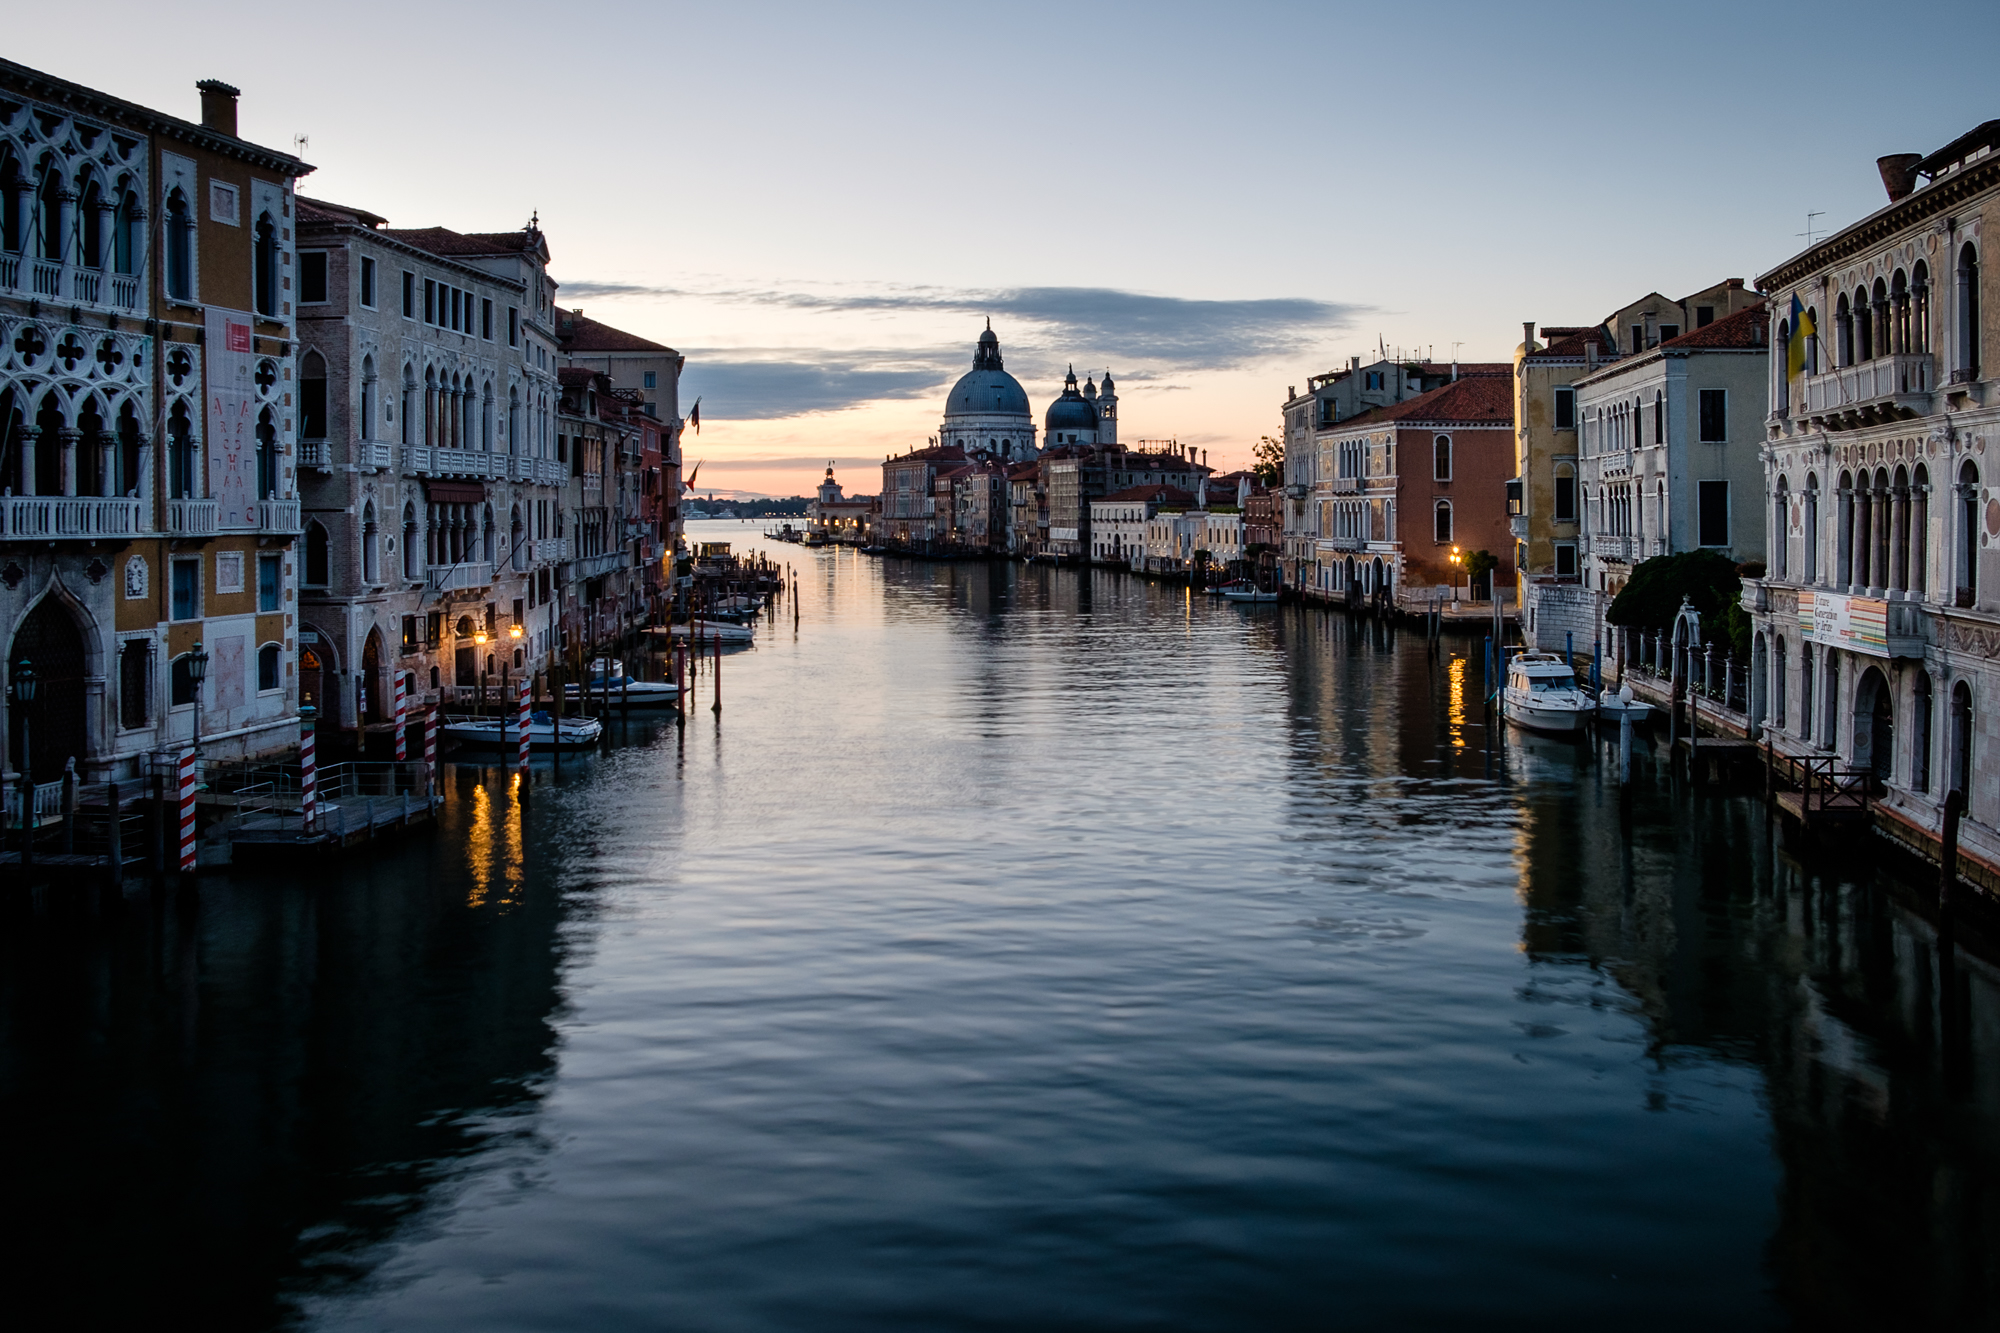 Photo of the Grand Canal and the Basilica in Venice taken by Trevor Sherwin